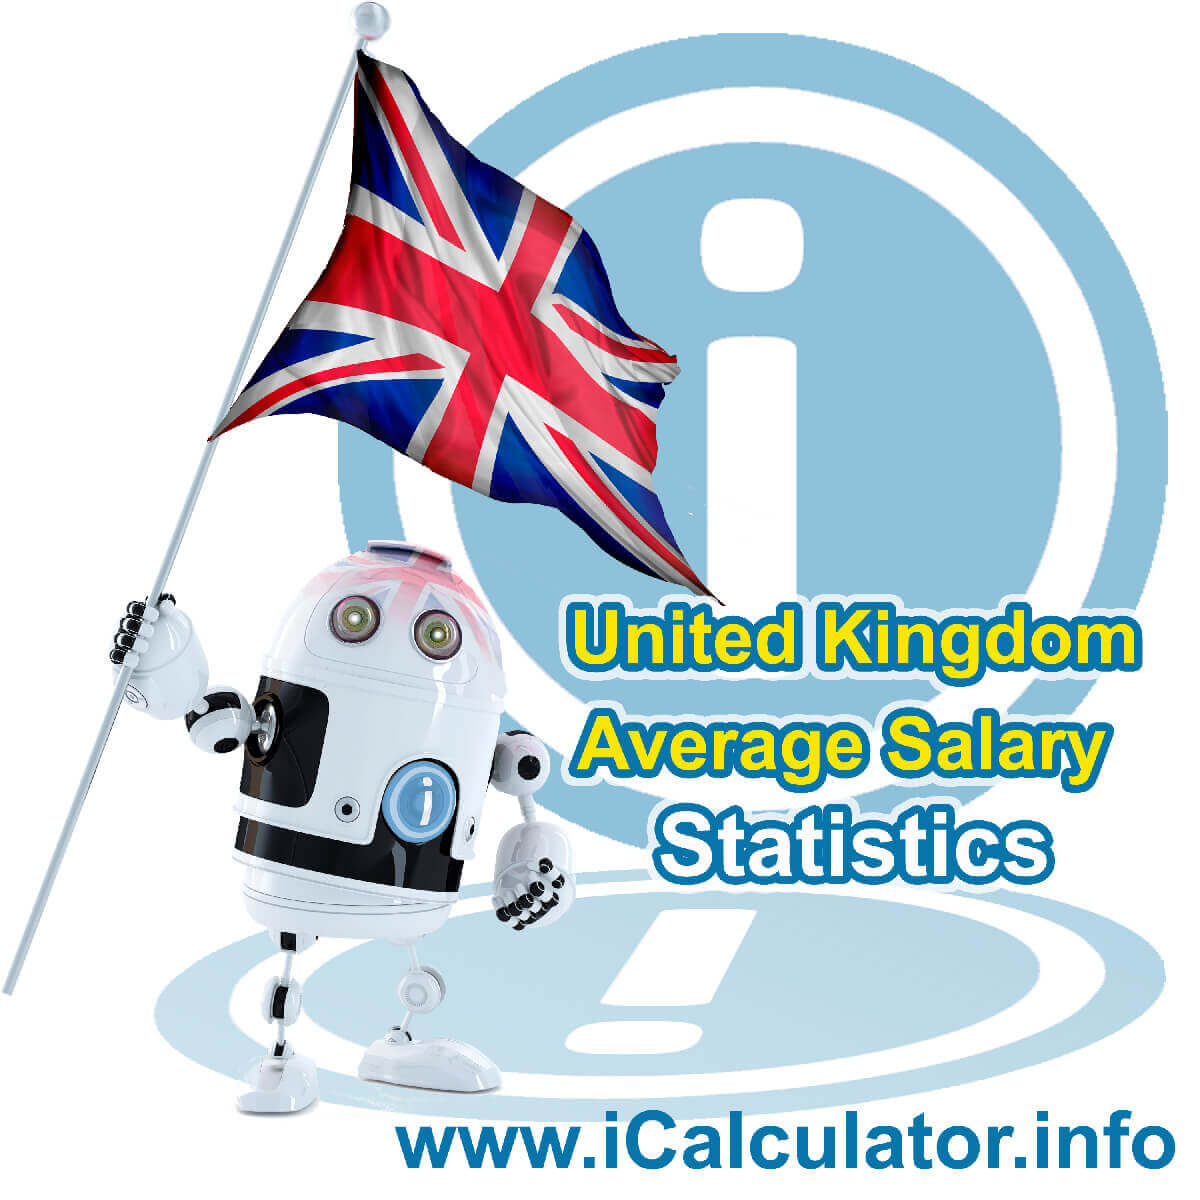 UK Average Salary in 2020. This image shows the United Kingdom flag and information relating to the salary statistics and average salary in the UK in 2020